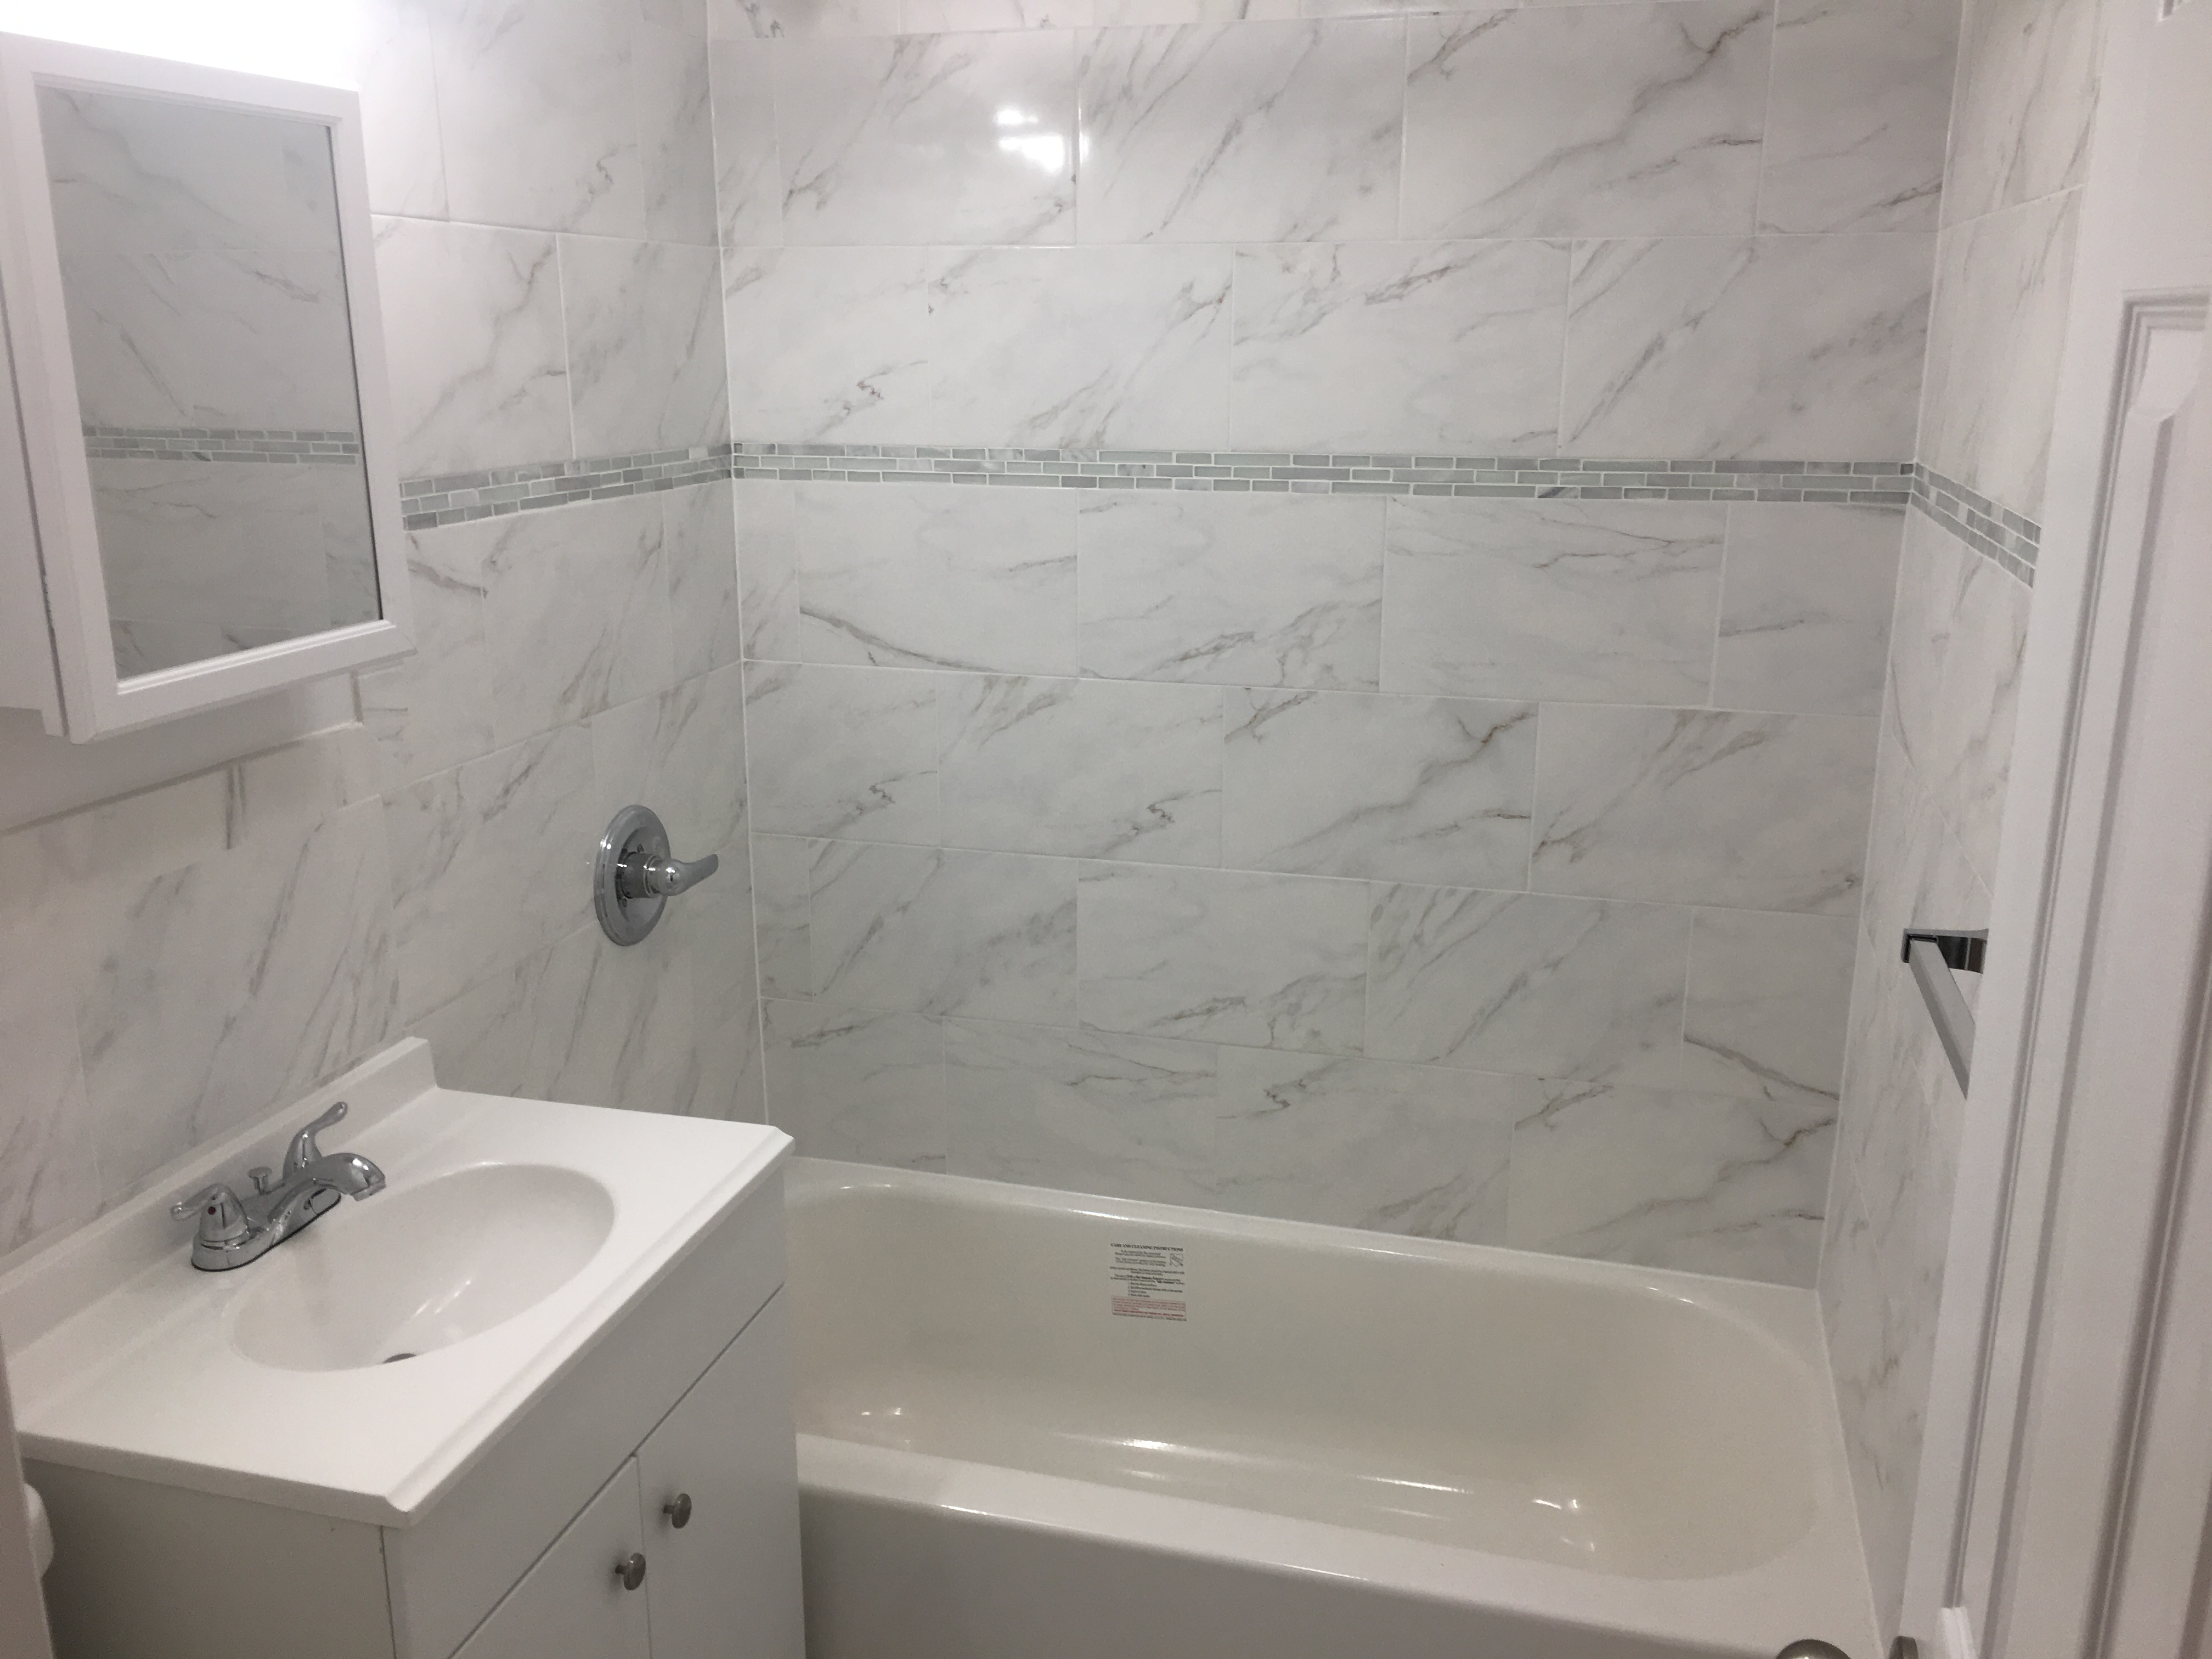 Nicely updated sunny  Studio  in a well kept garden style property. Newly remodeled kitchen and bath. Shimmery hardwood. This is a bright sunny immaculate apartment. Laundry on site. Parking included.  White Plains offers great dining and shopping and a short train ride to NYC. Good credit score required.  Private parking for 1 car is included